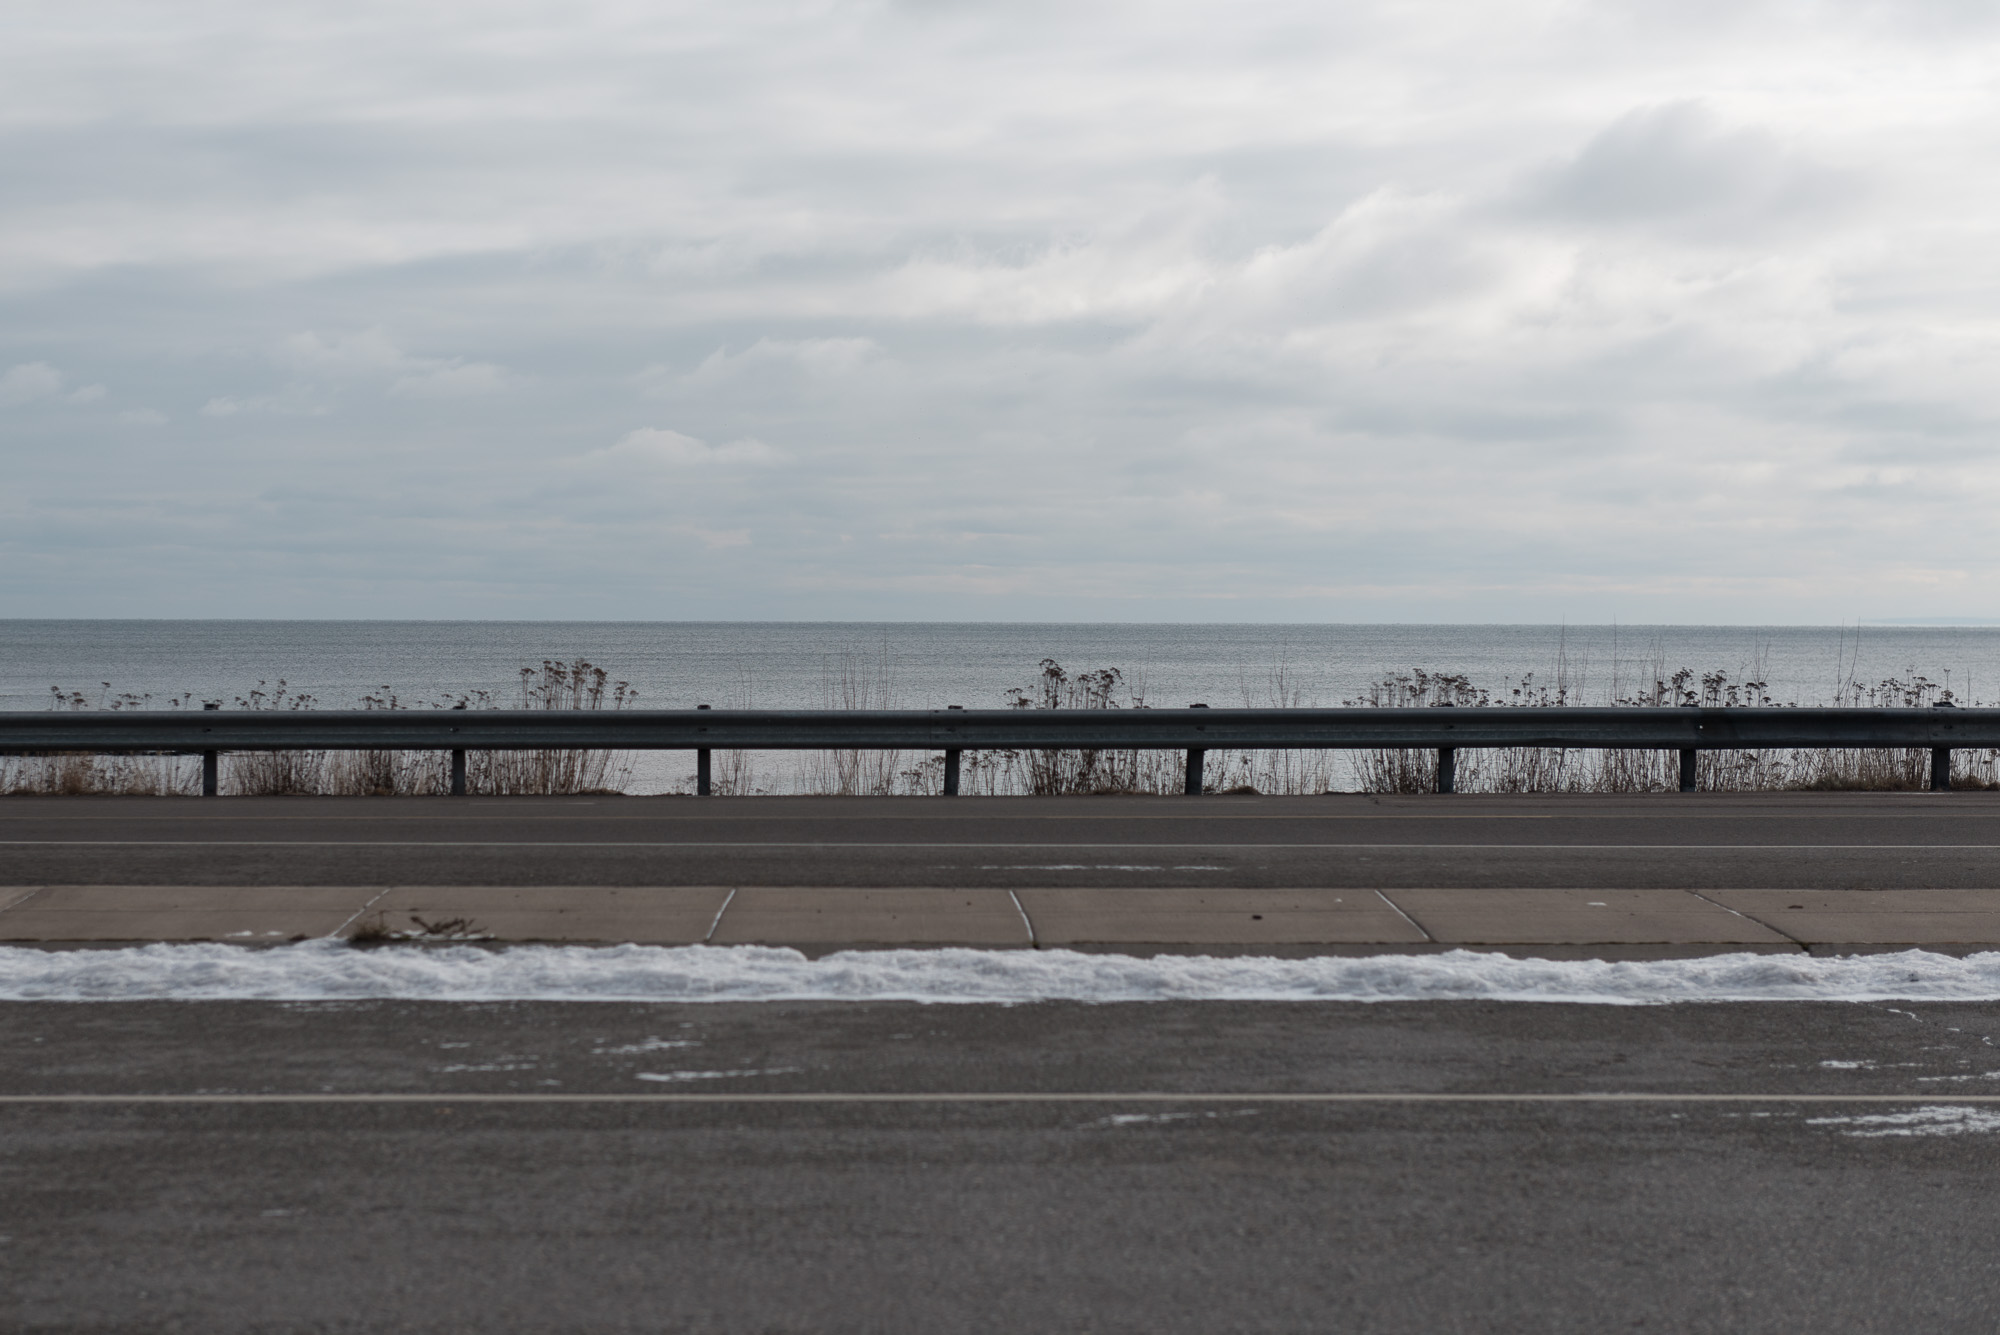 A photo from the side of a highway looking over the side. Lake Superior is in the background.